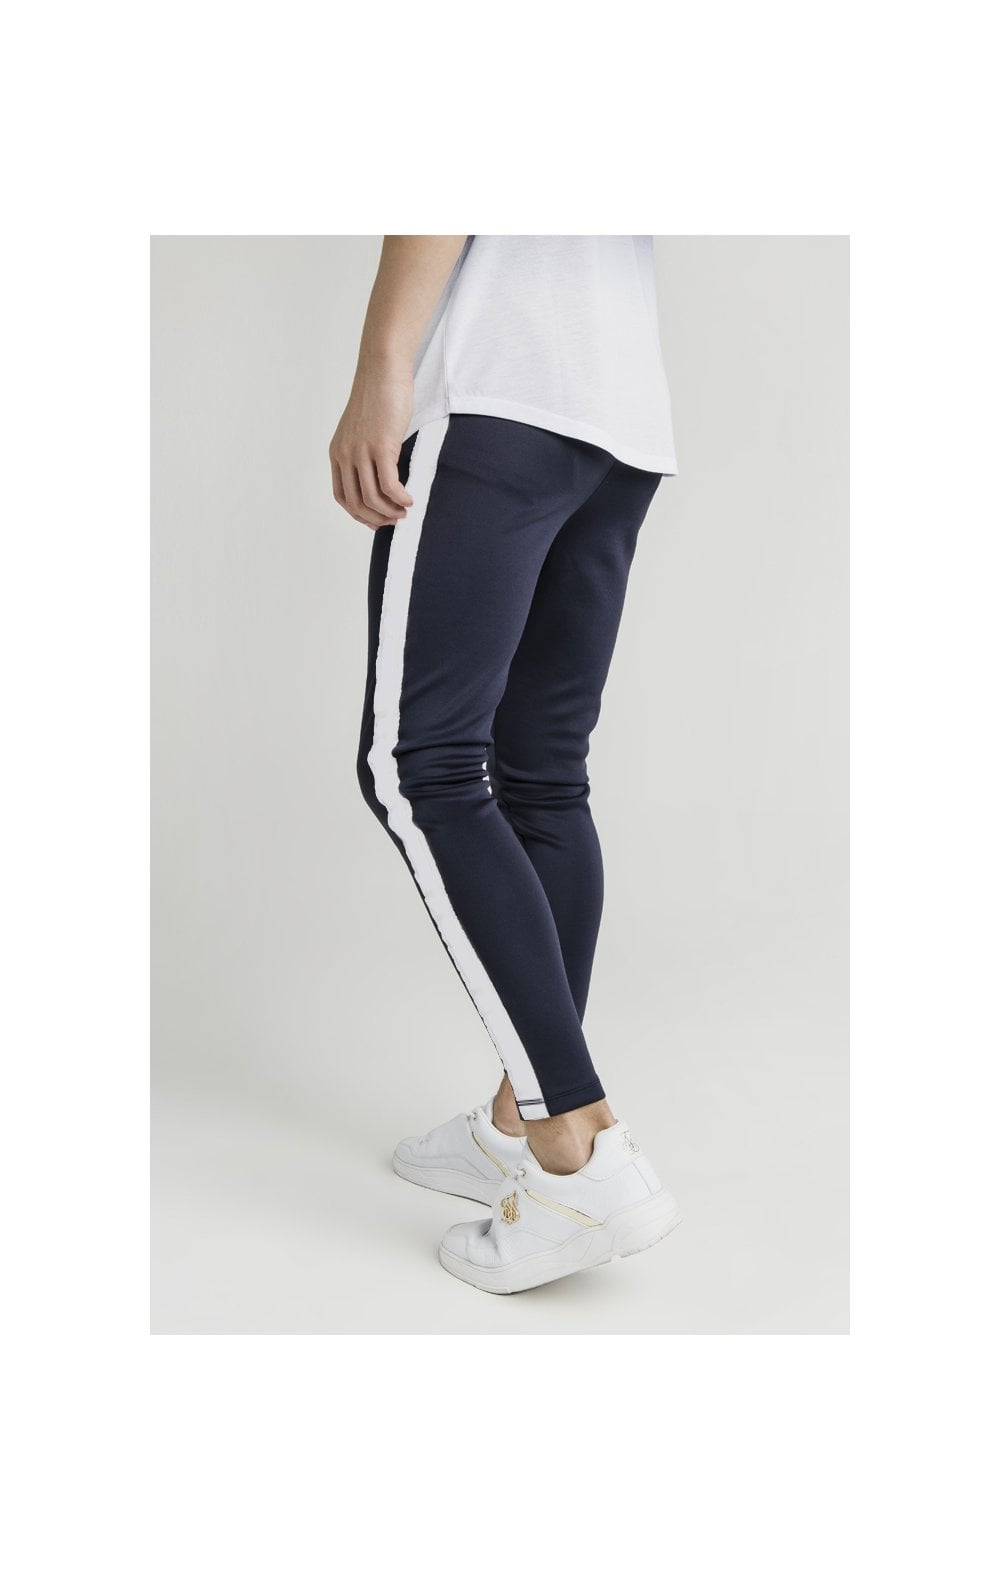 Load image into Gallery viewer, Illusive London Athlete Joggers - Navy & White (1)